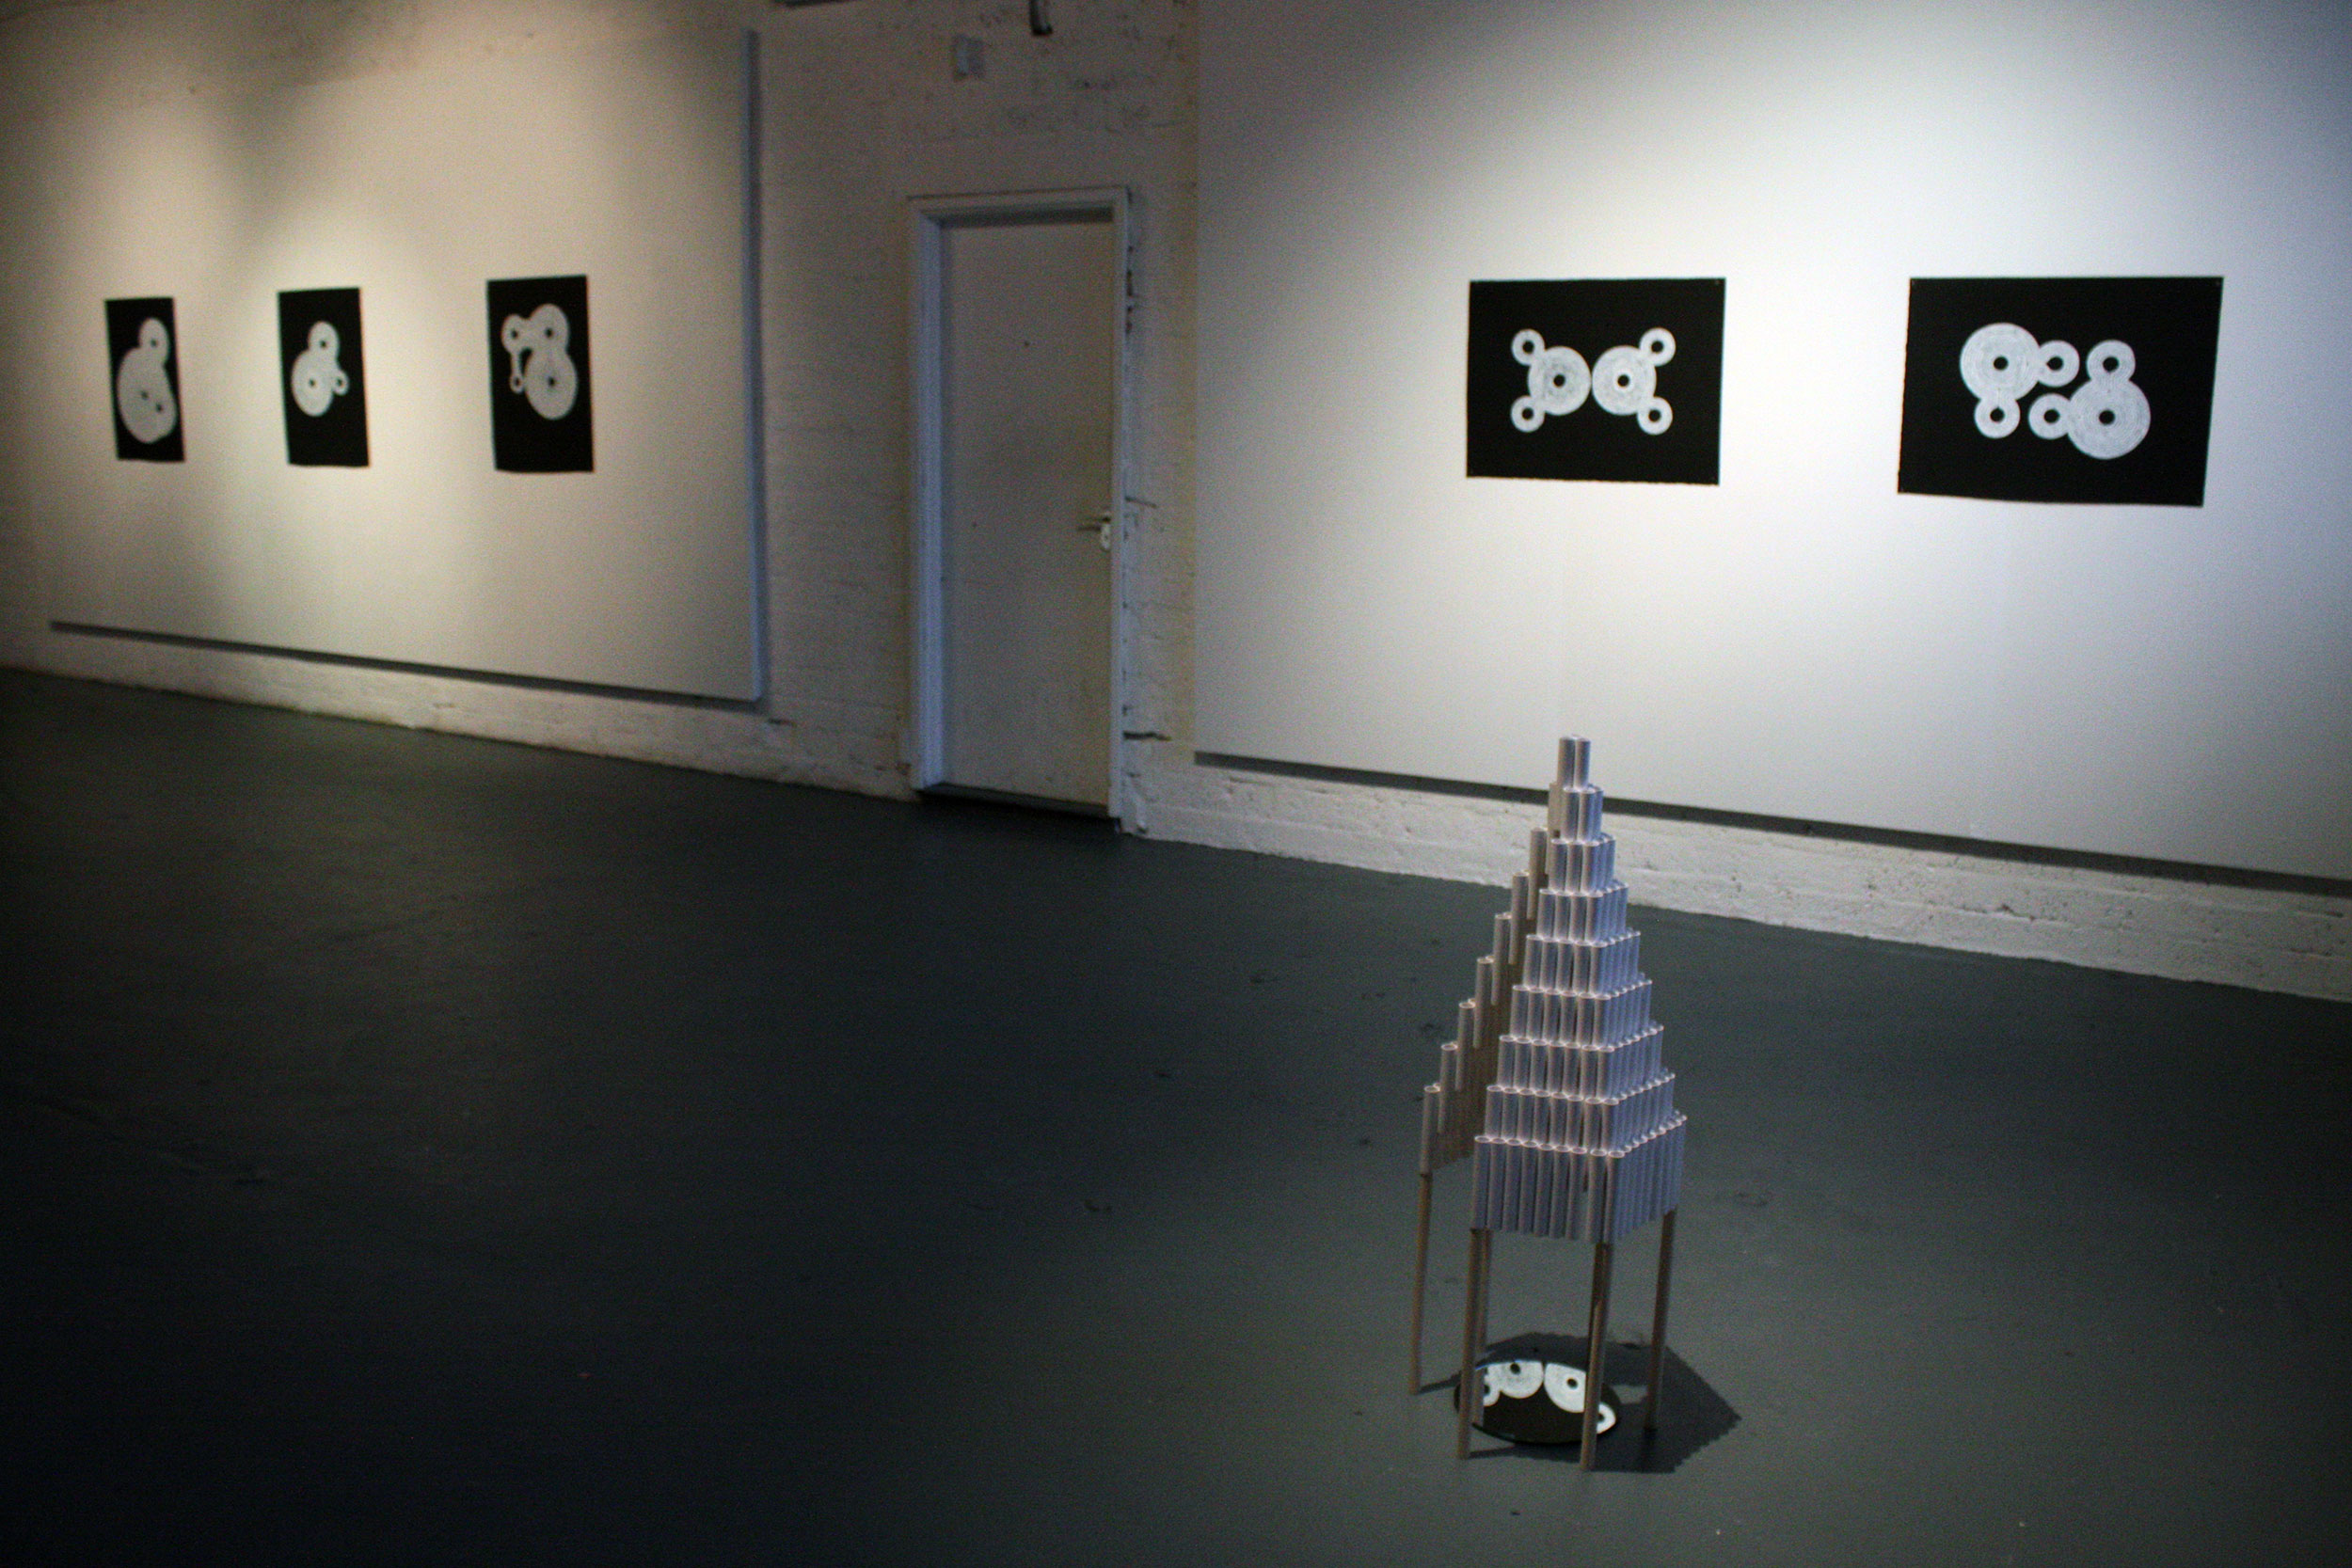 Installation view showing untitled sculpture and drawings